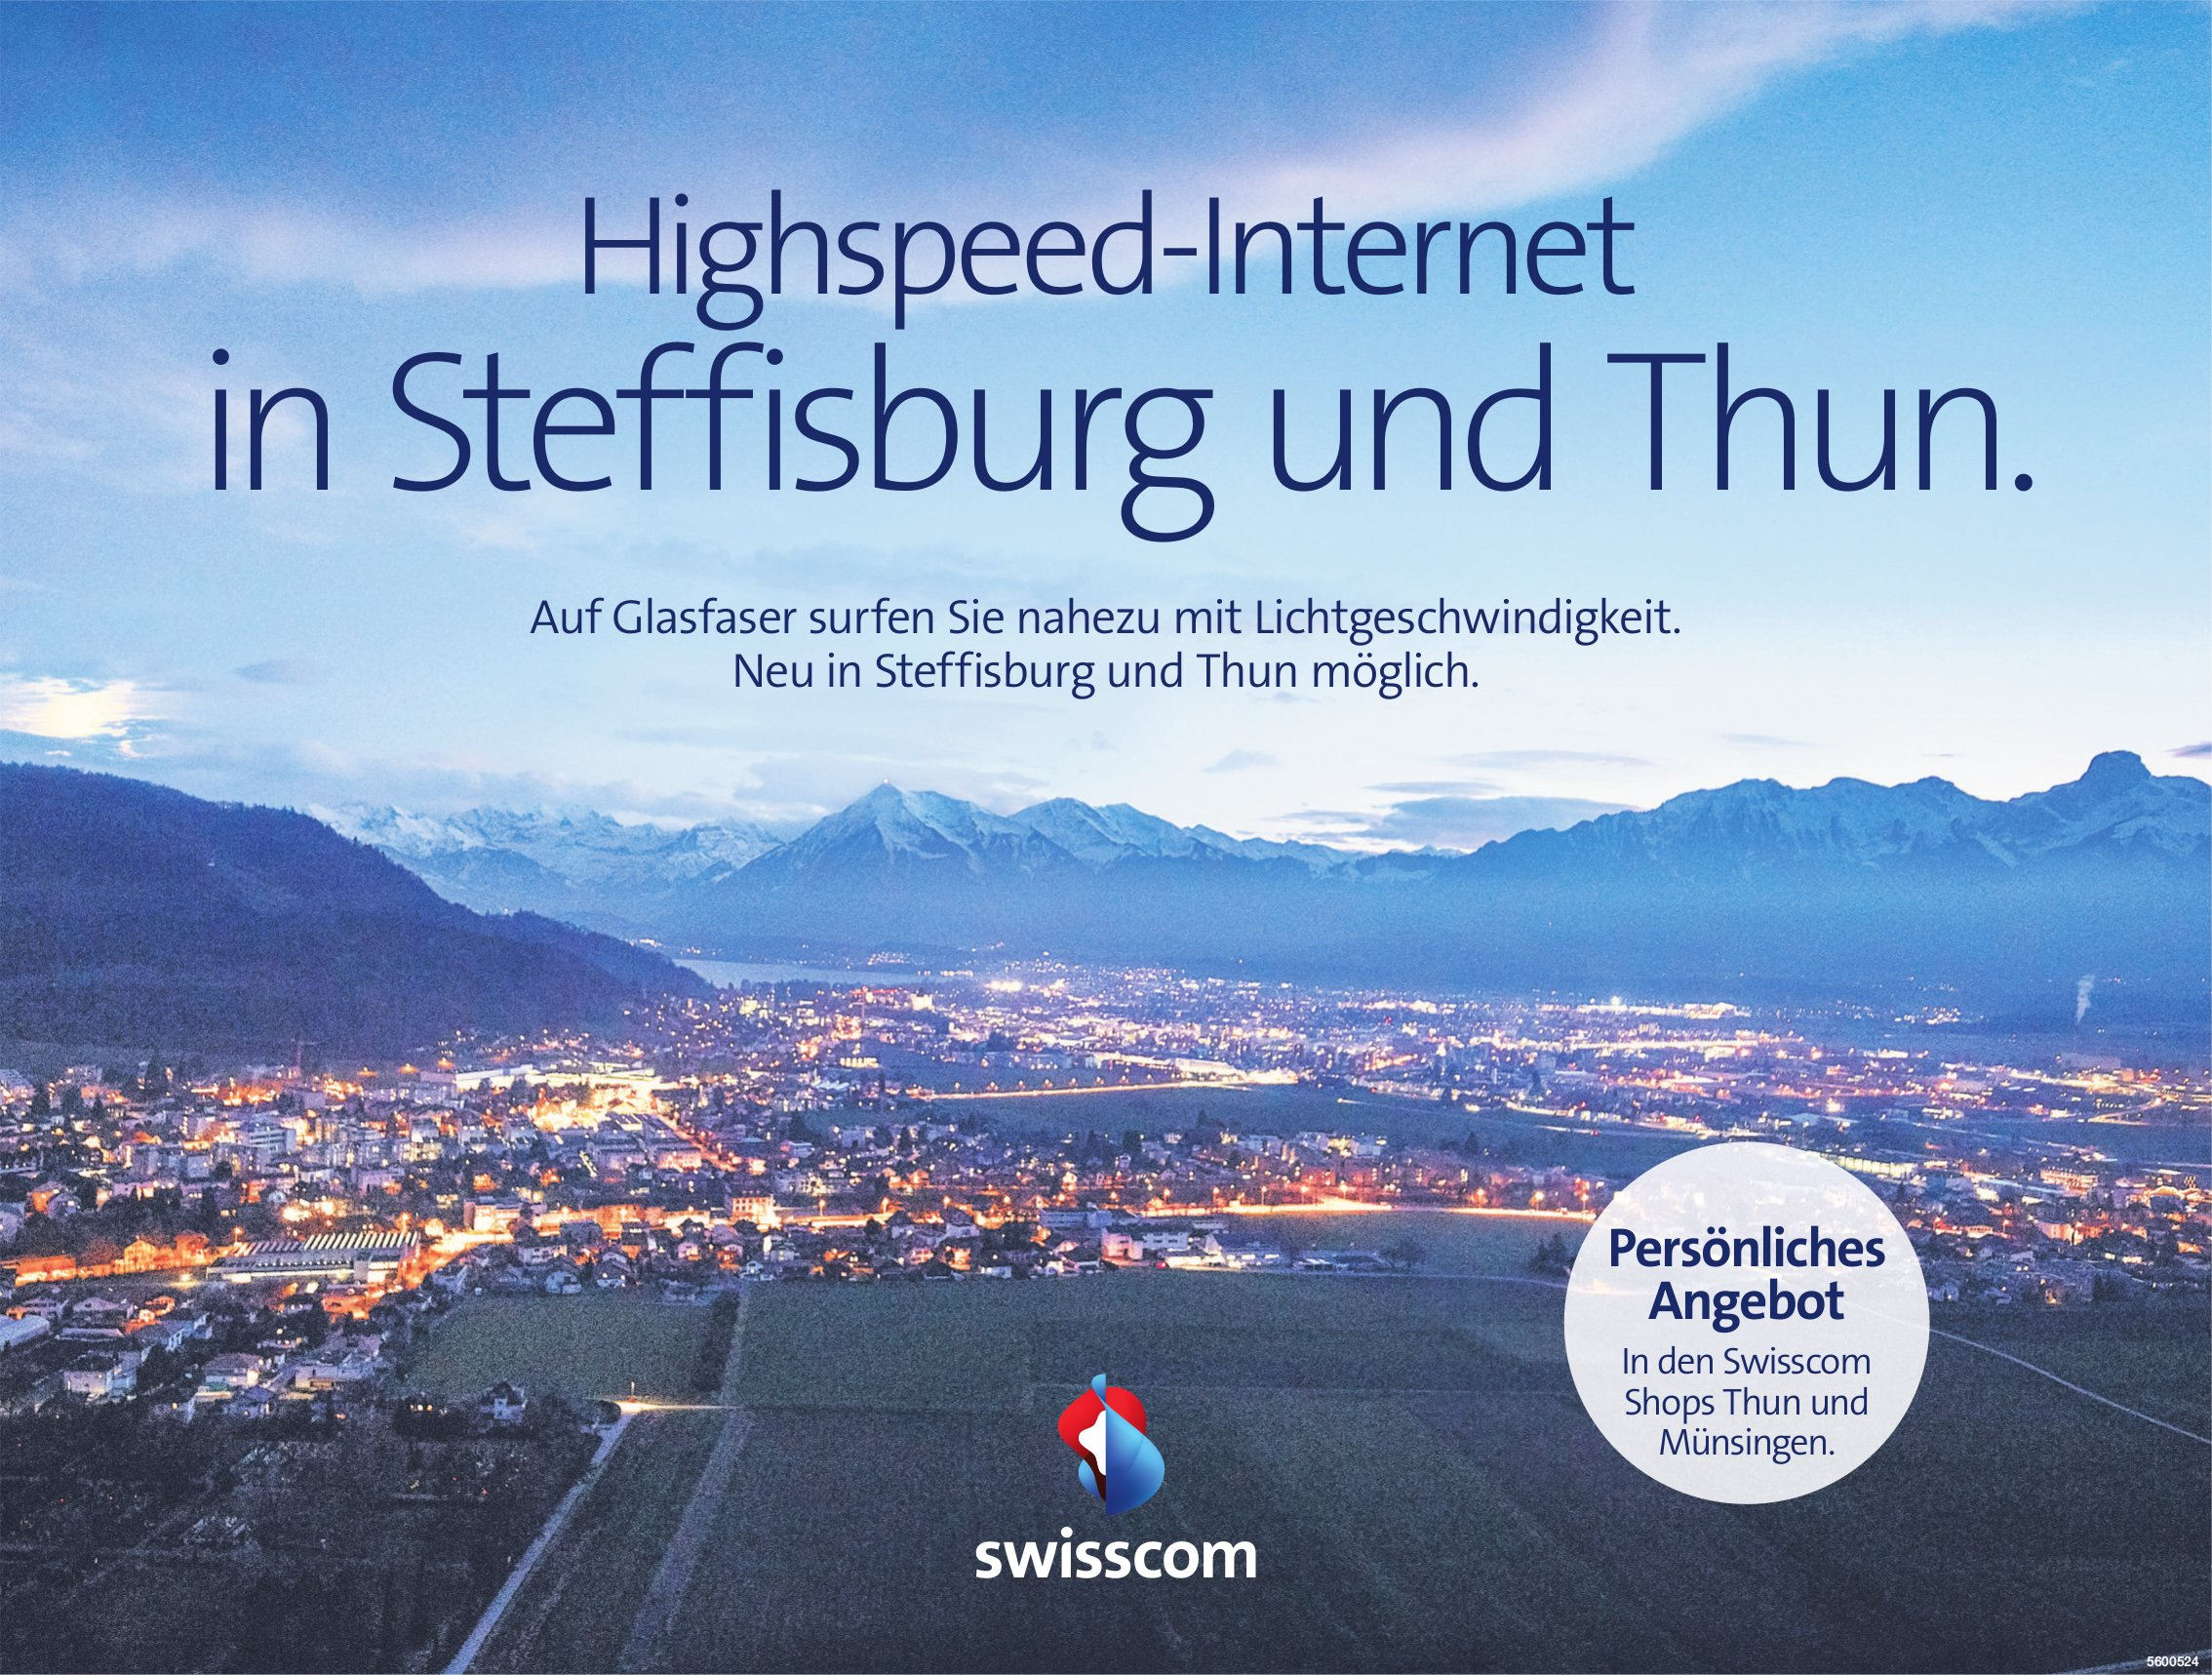 Swisscom - Highspeed-Internet in Steffisburg und Thun.